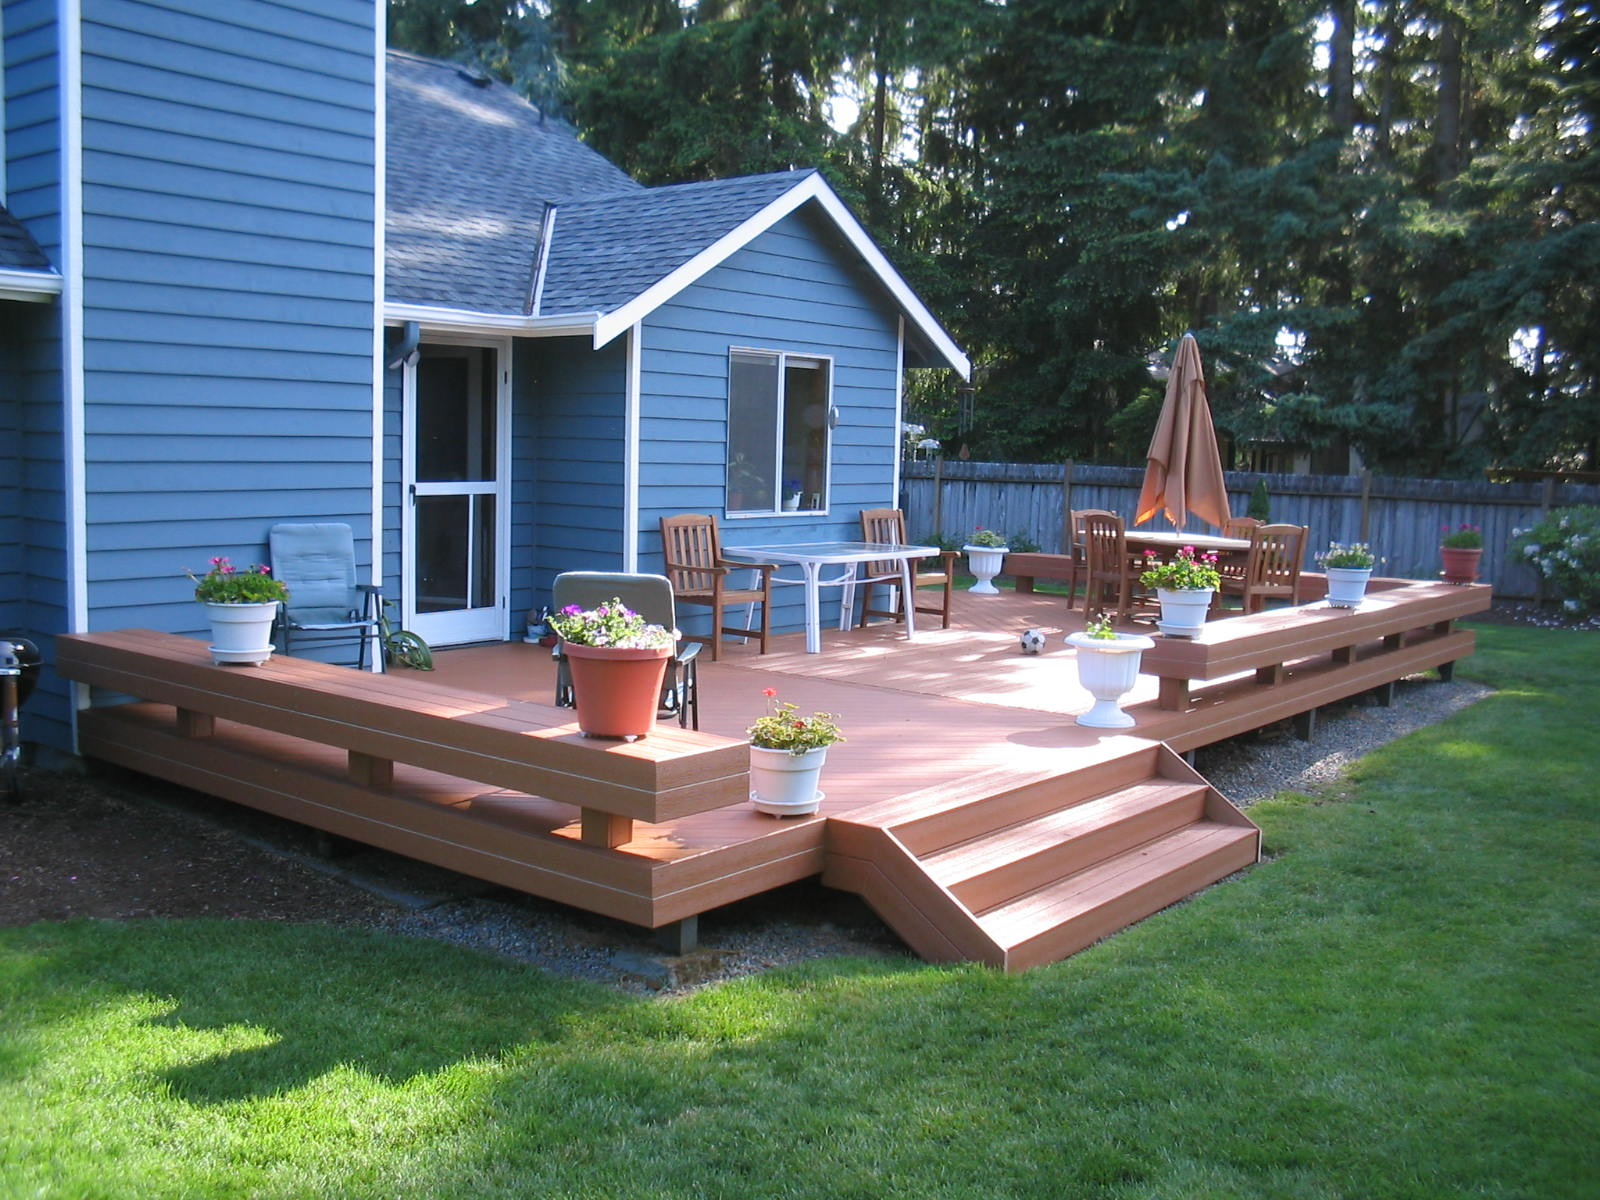 Small deck design ideas st louis decks screened for Backyard decks